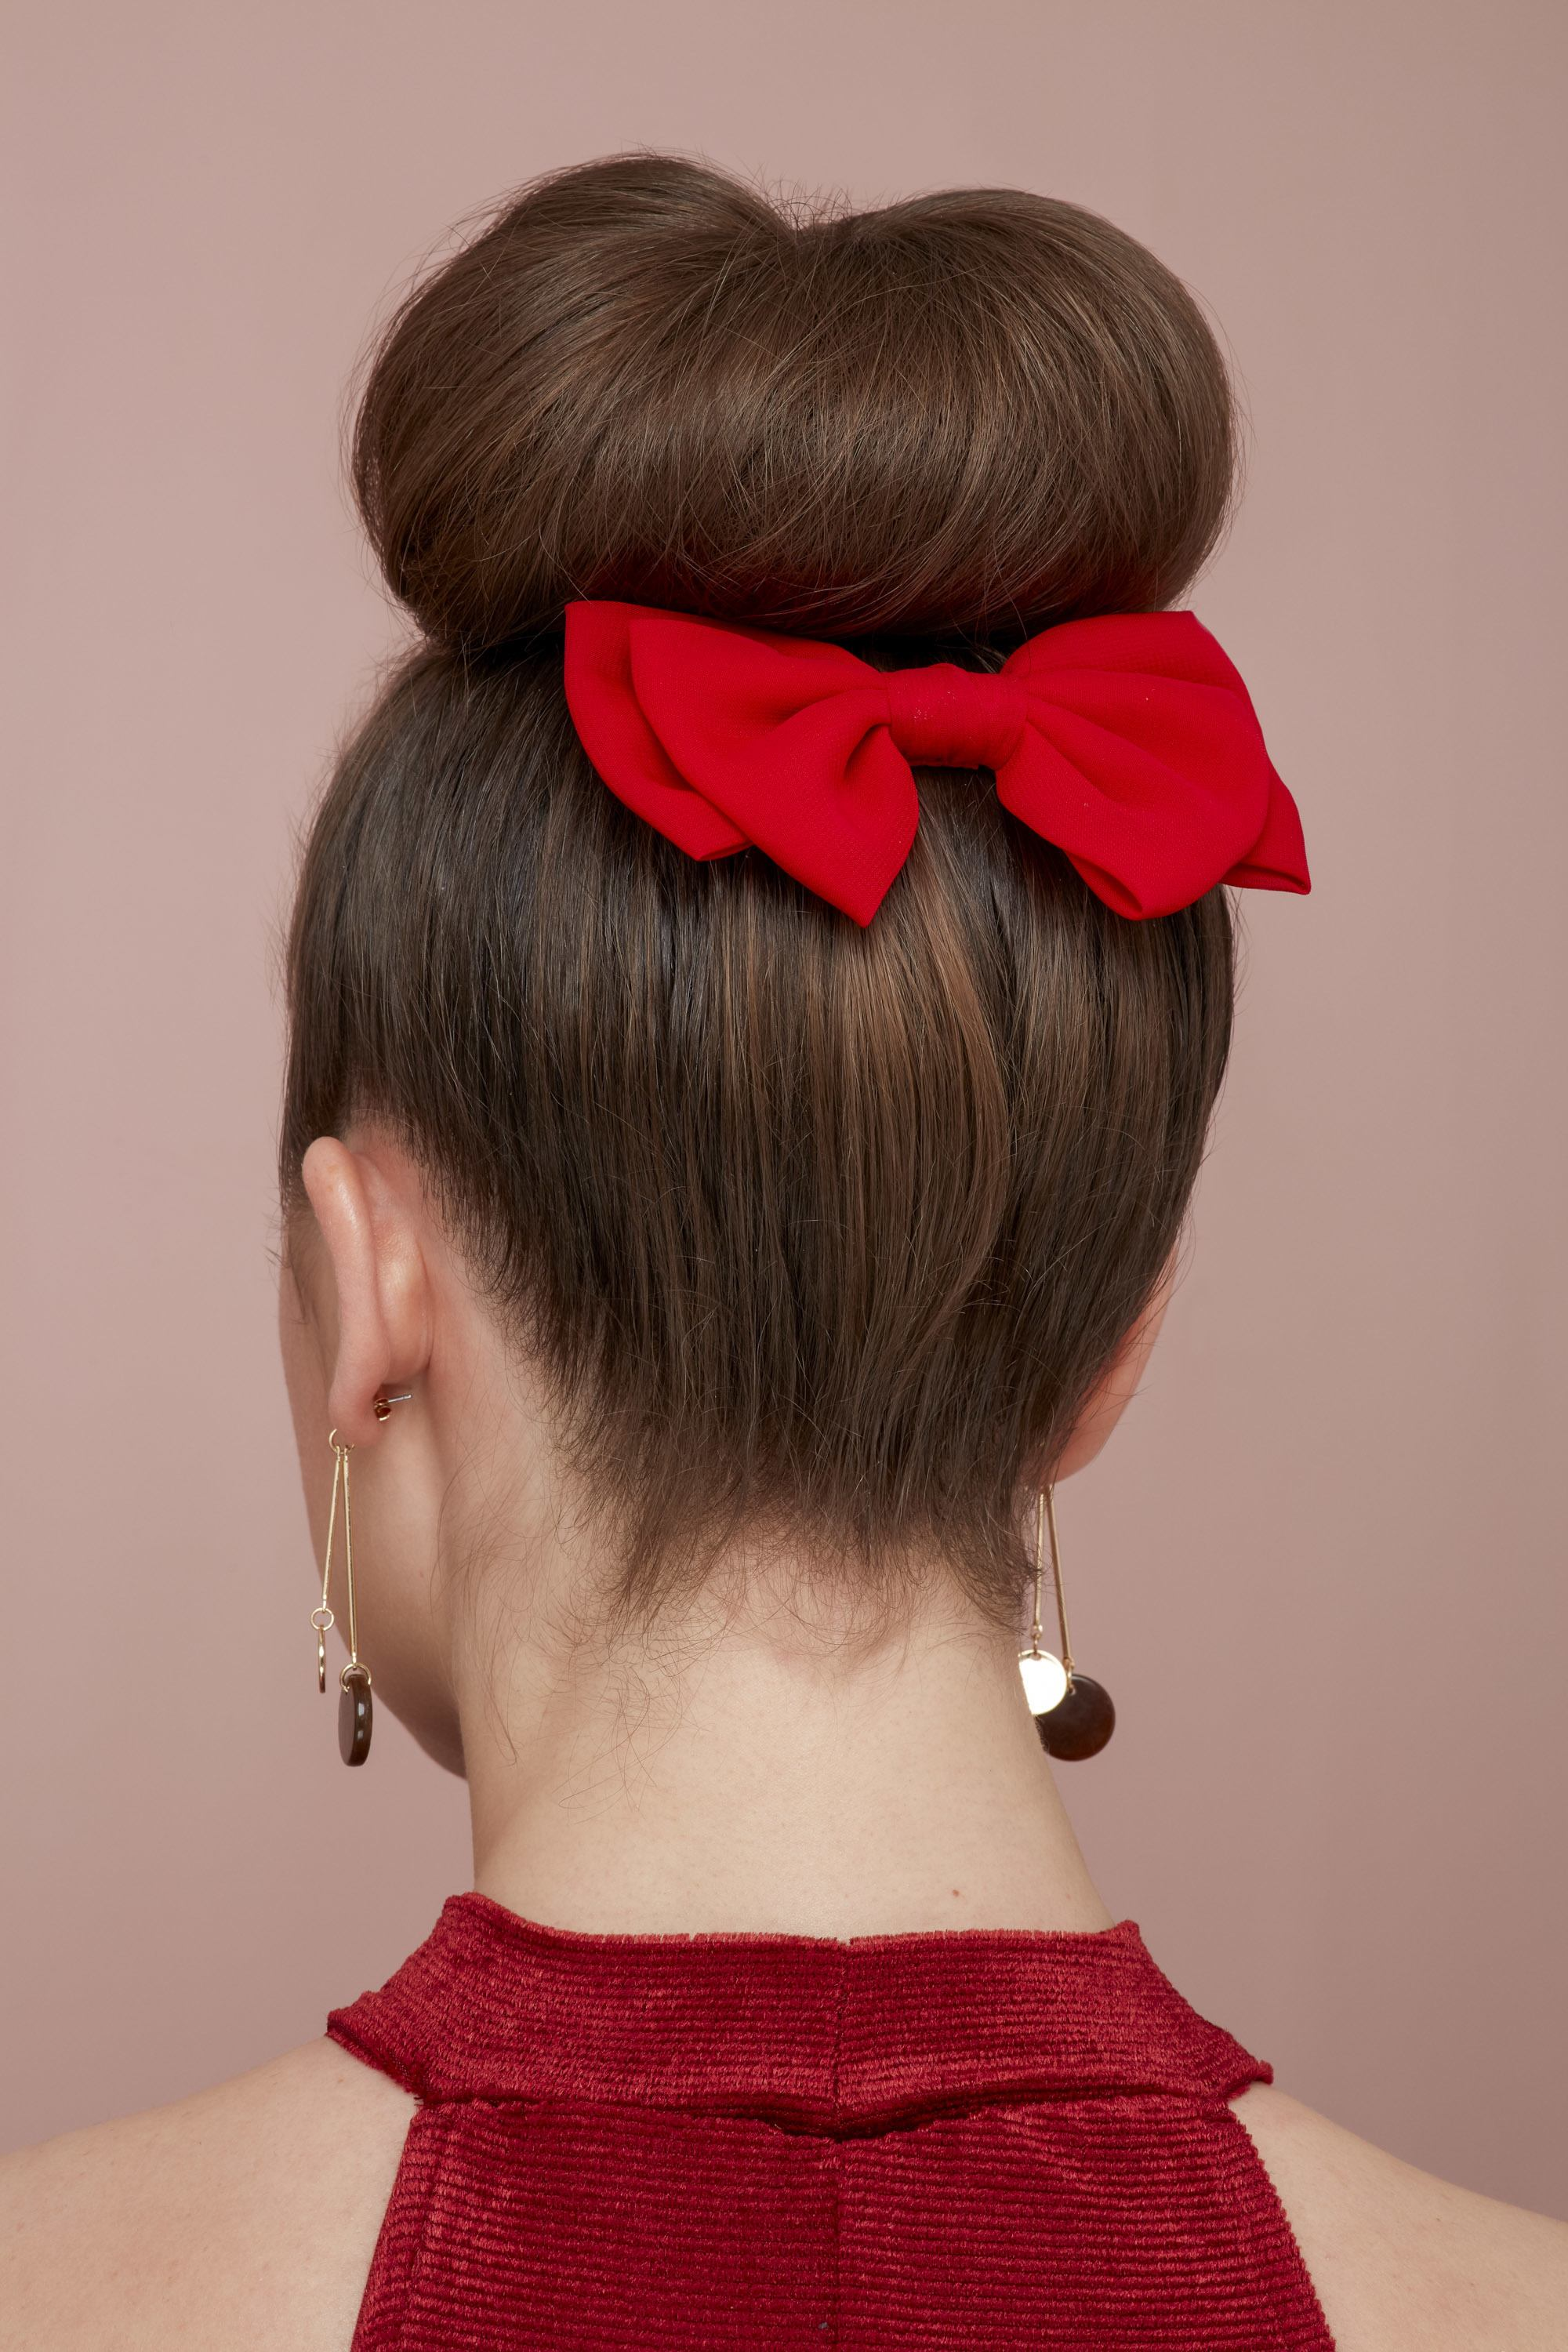 Woman with dark hair styled into a bun with red hair bow